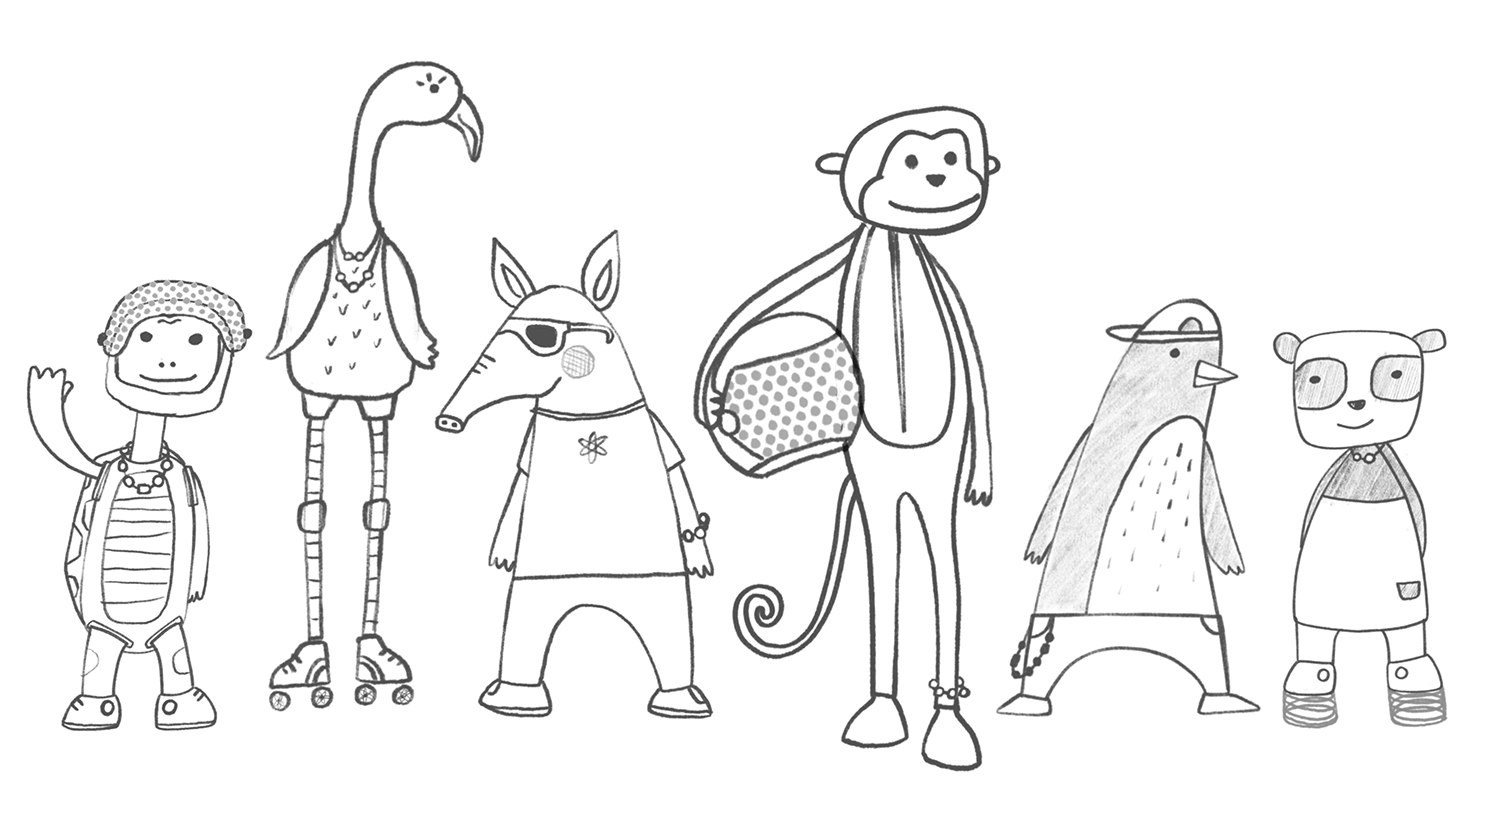 Initial sketches of the six proposed characters